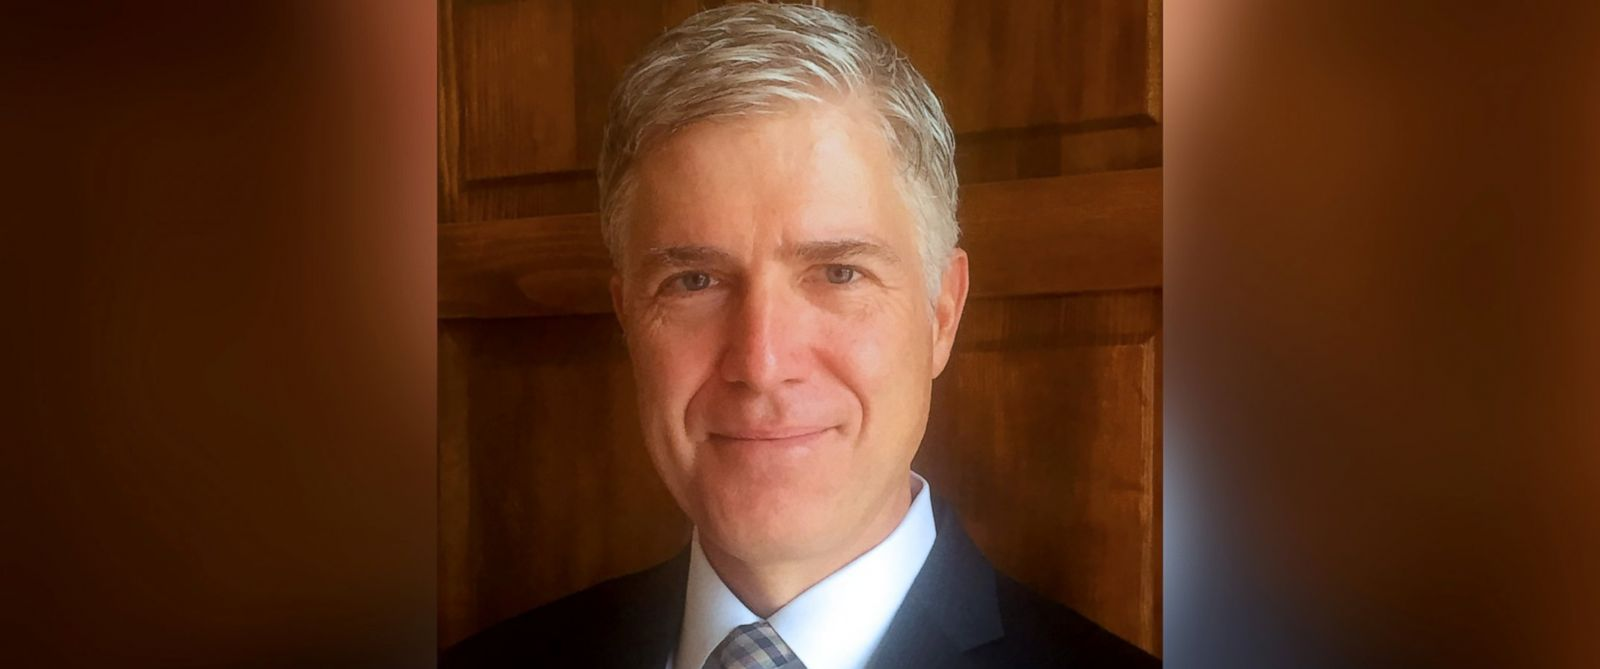 PHOTO: Judge Neil Gorsuch is pictured in an undated handout photo from the University of Colorado Law School.